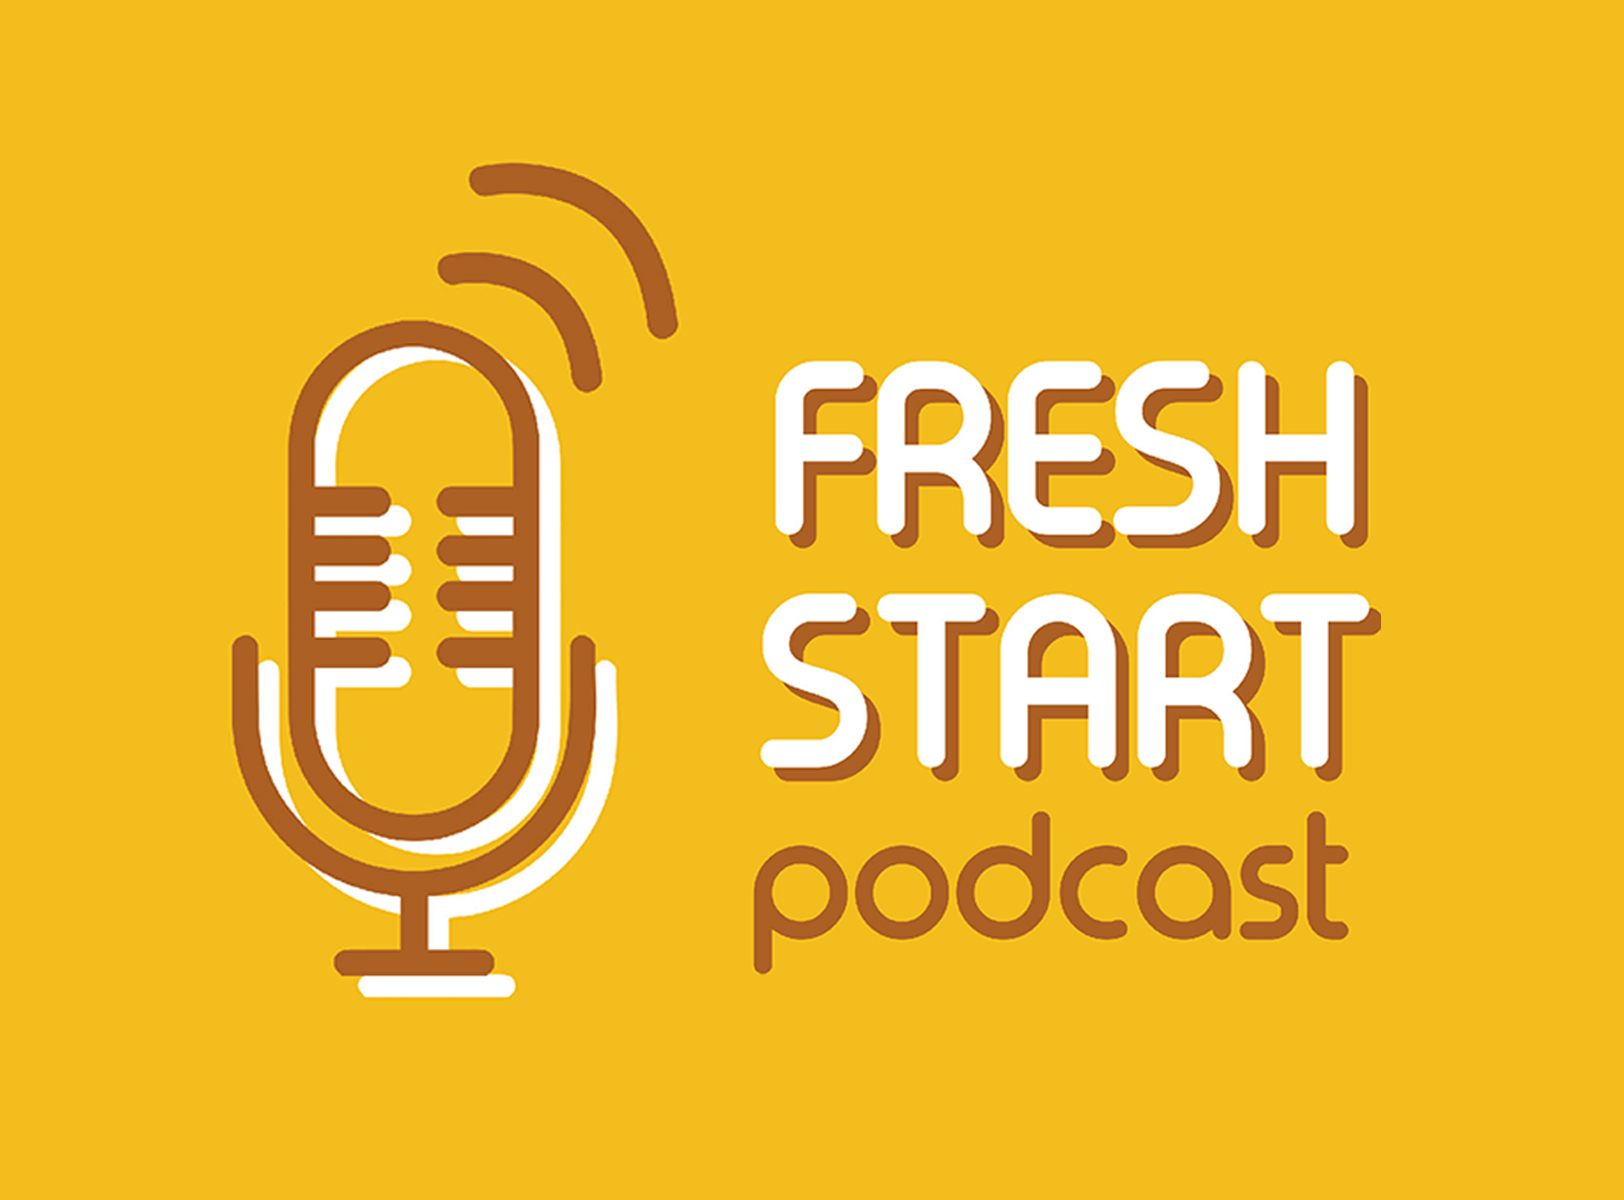 Fresh Start: Podcast News (7/25/2019 Thu.)